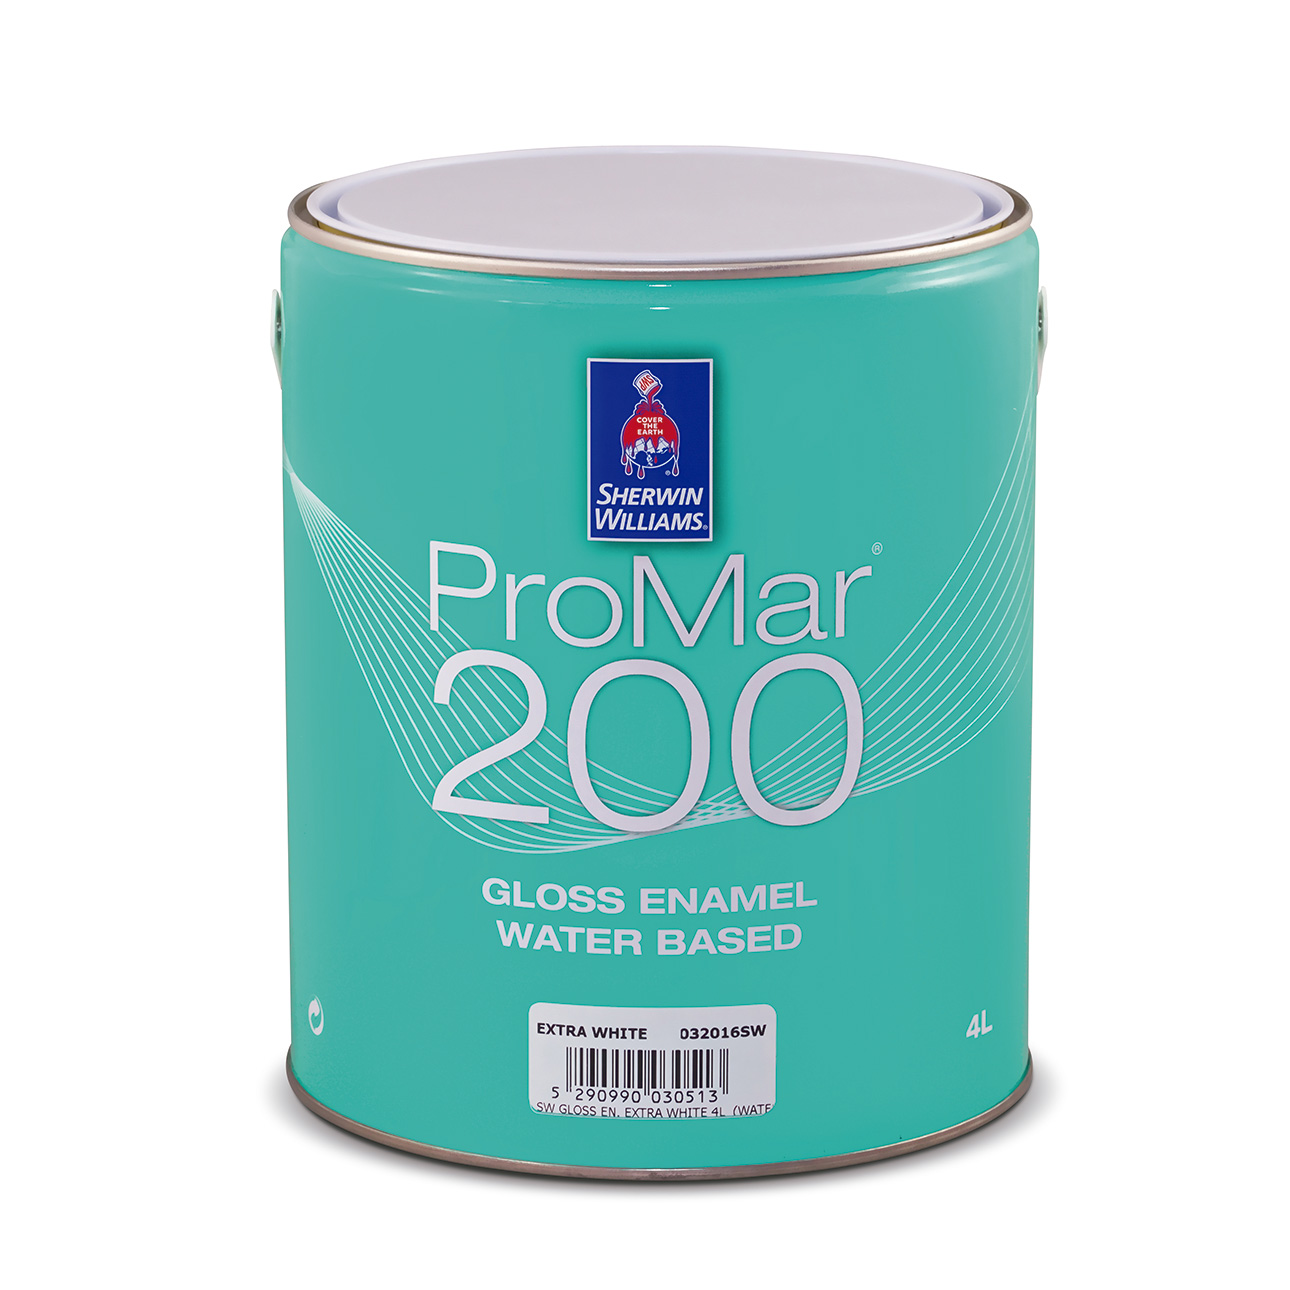 SHERWIN-WILLIAMS® PROMAR® 200 GLOSS ENAMEL WATER BASED SUPERWHITE 1L